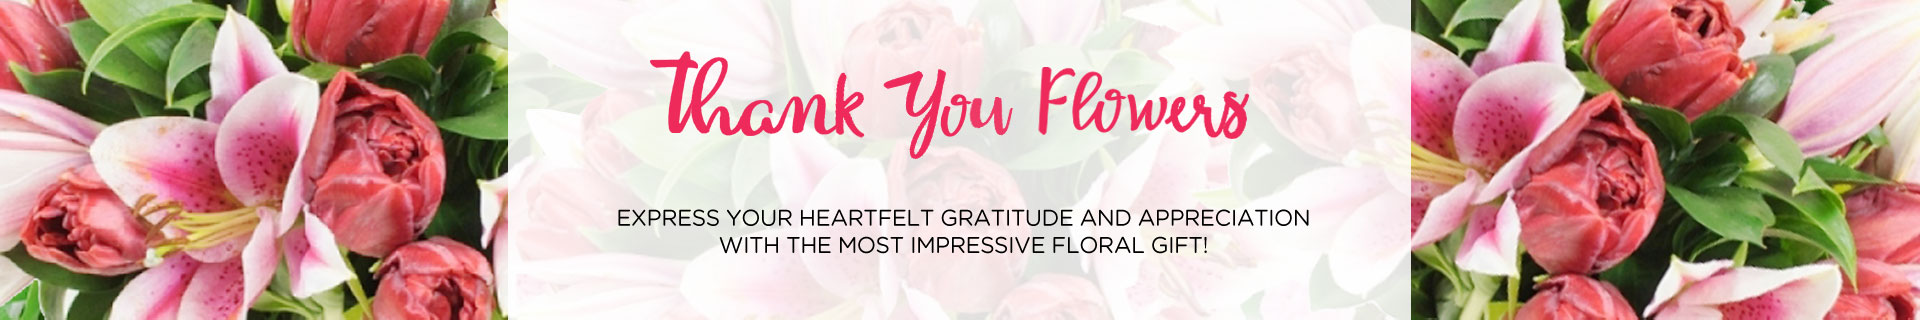 Thank You Flowers